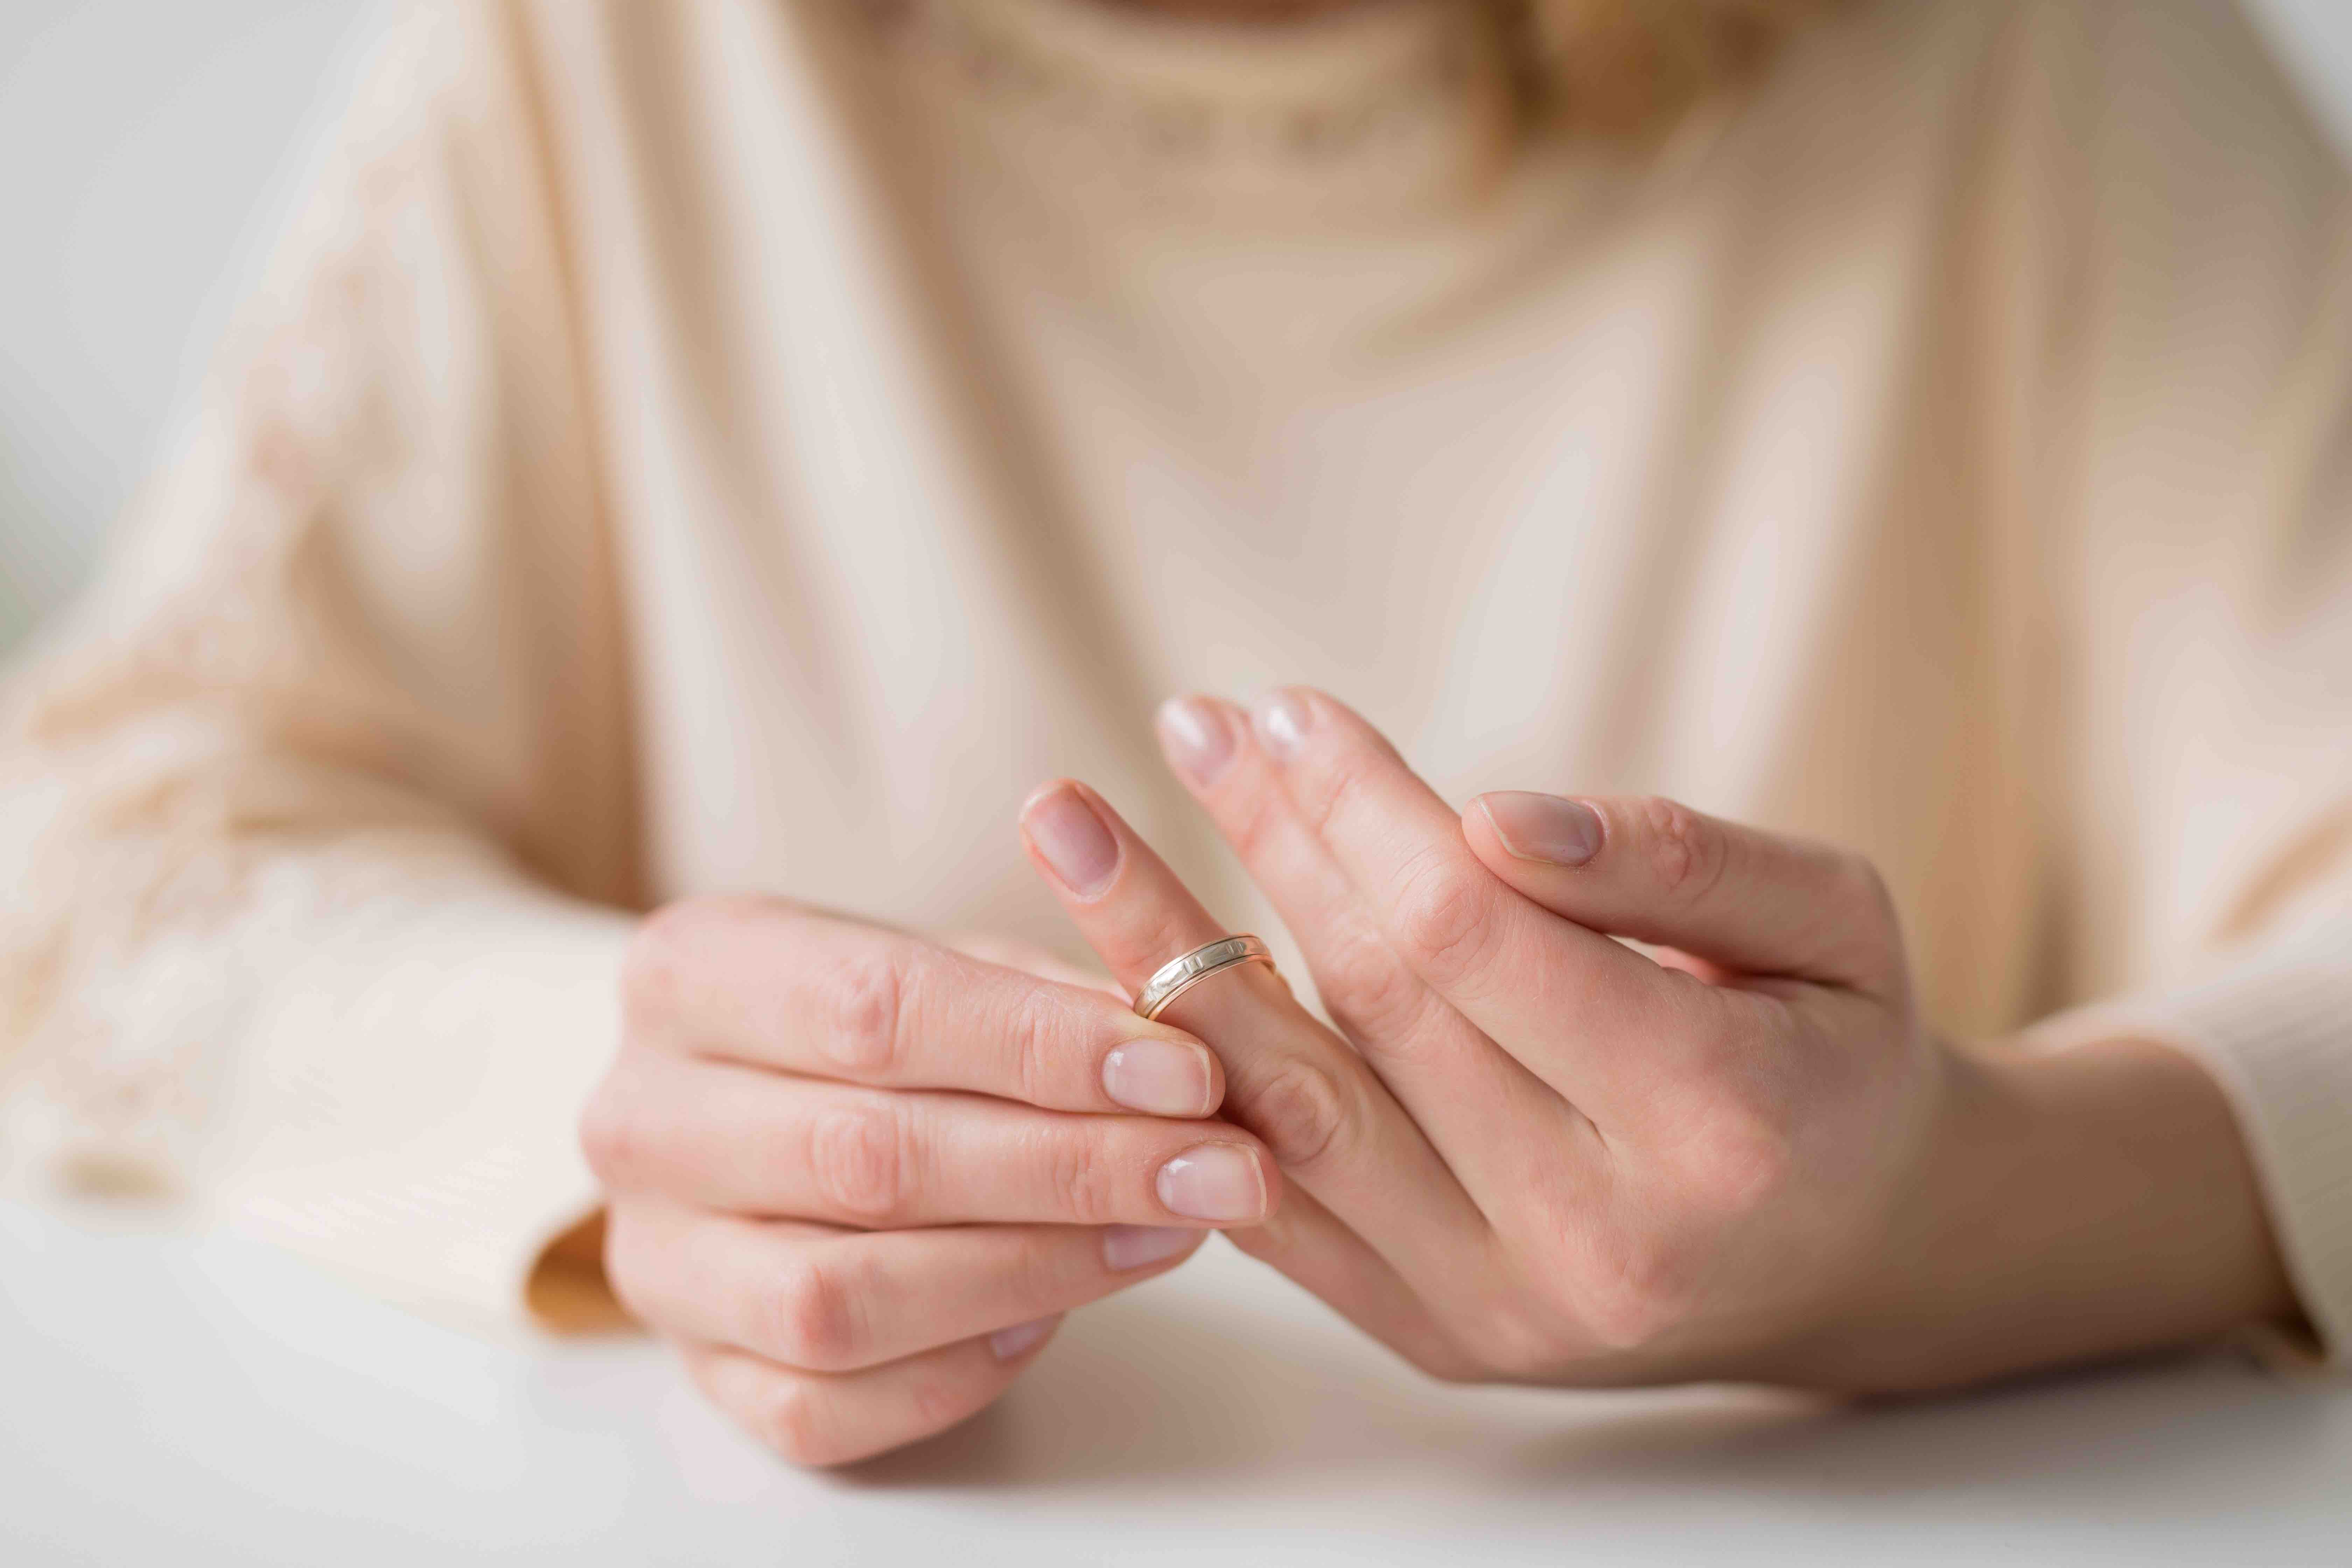 Aesthetic Medicine - Divorce drives women to have injectable